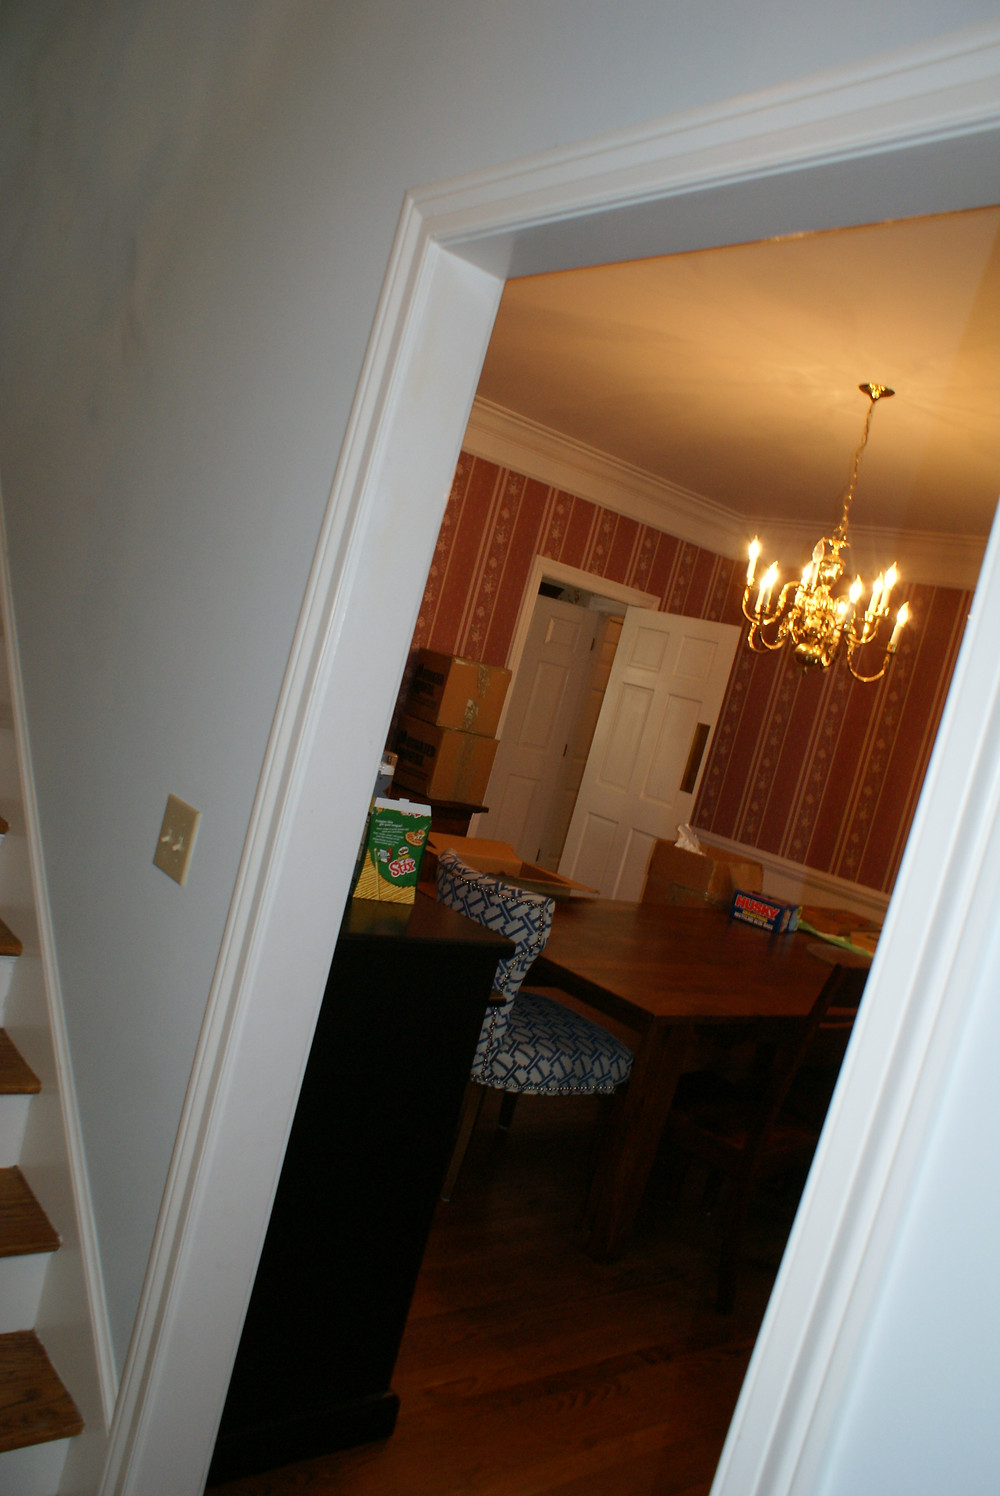 Property 2: The Dining Room After